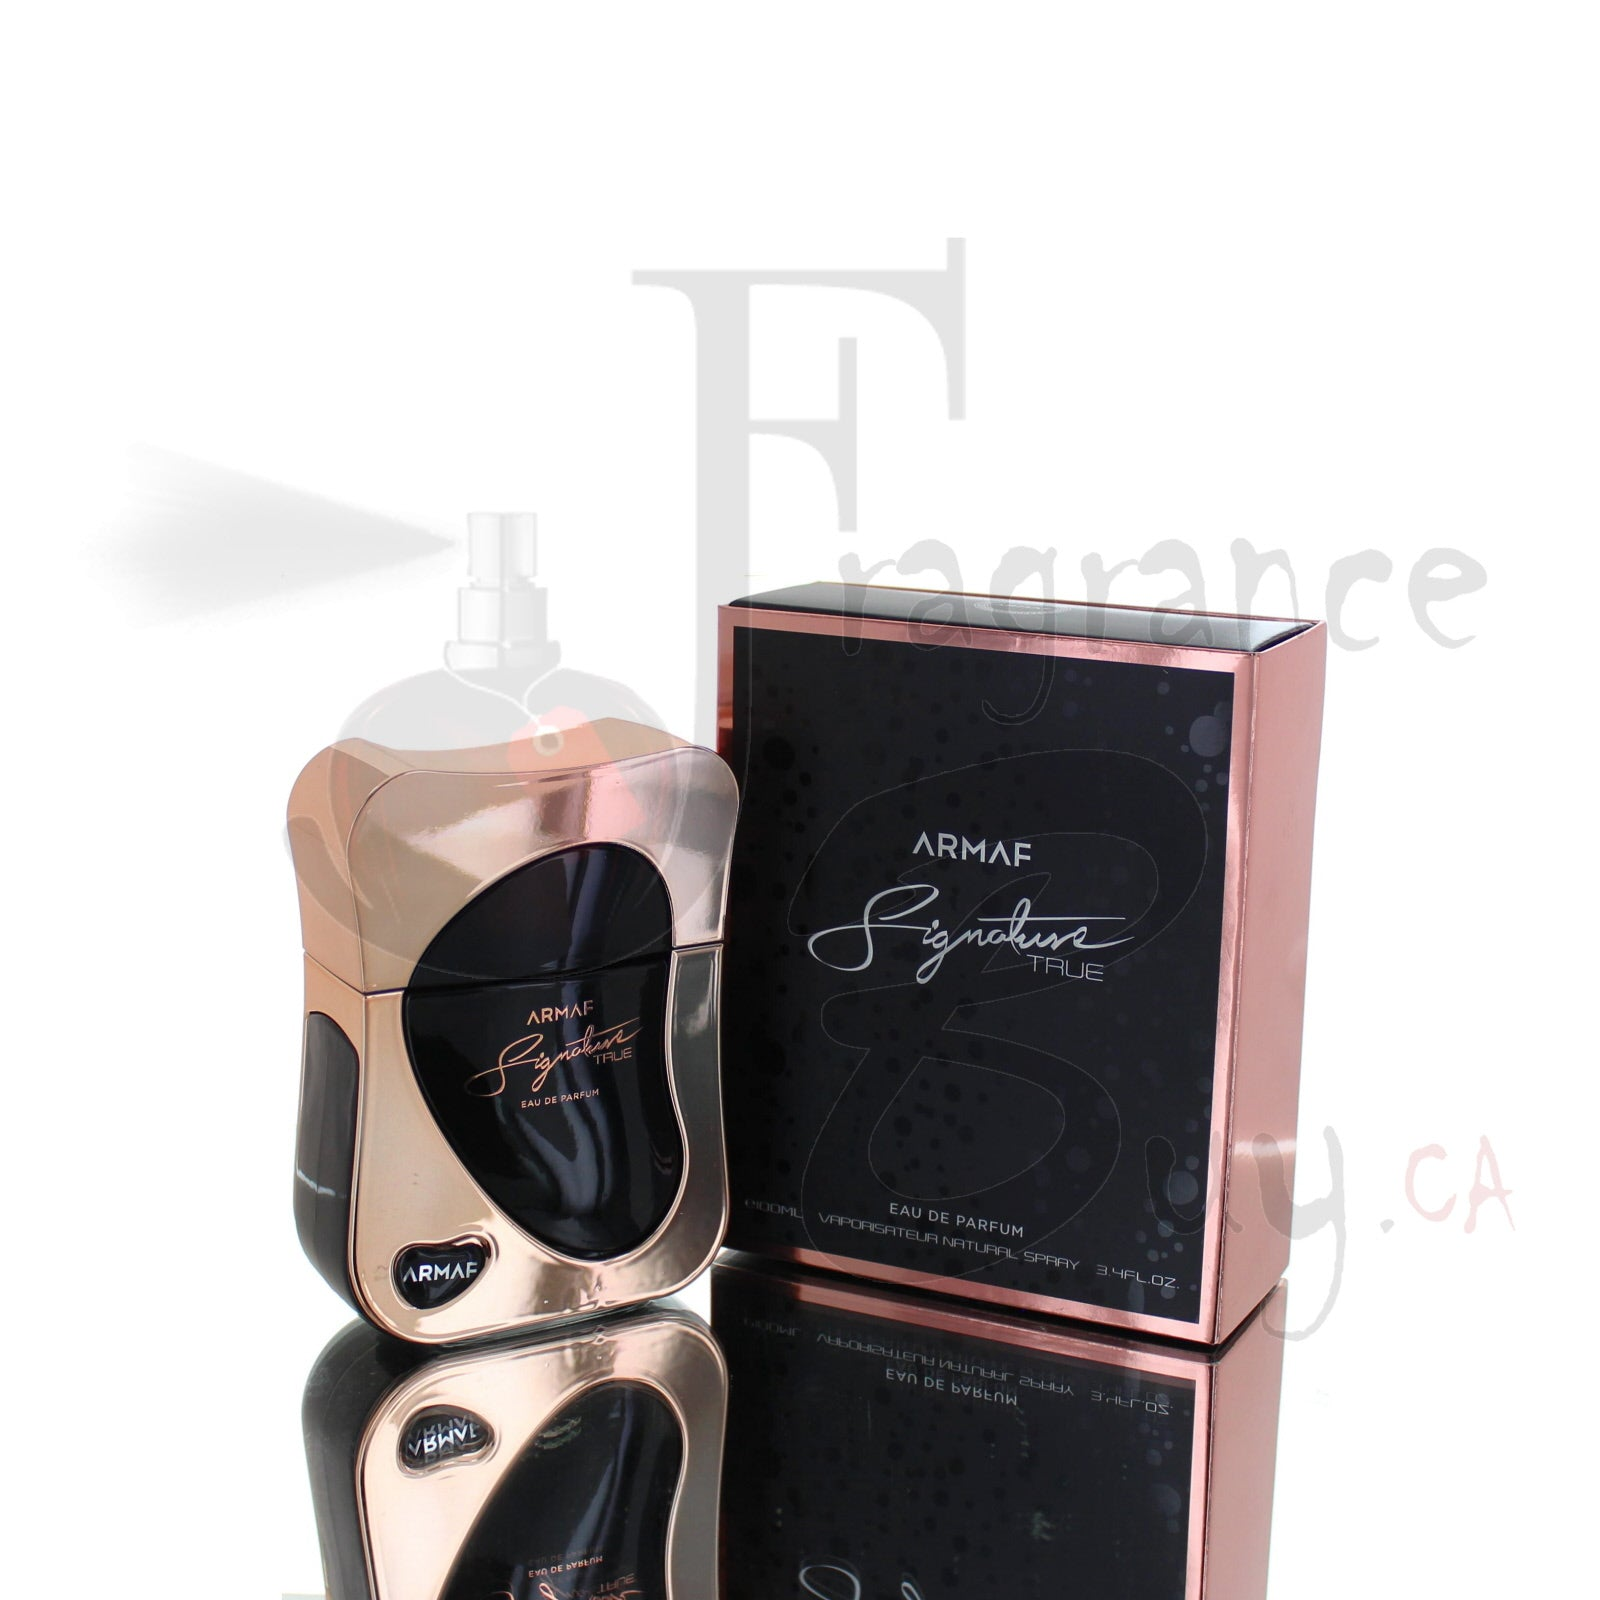 Armaf Signature True For Man/Woman